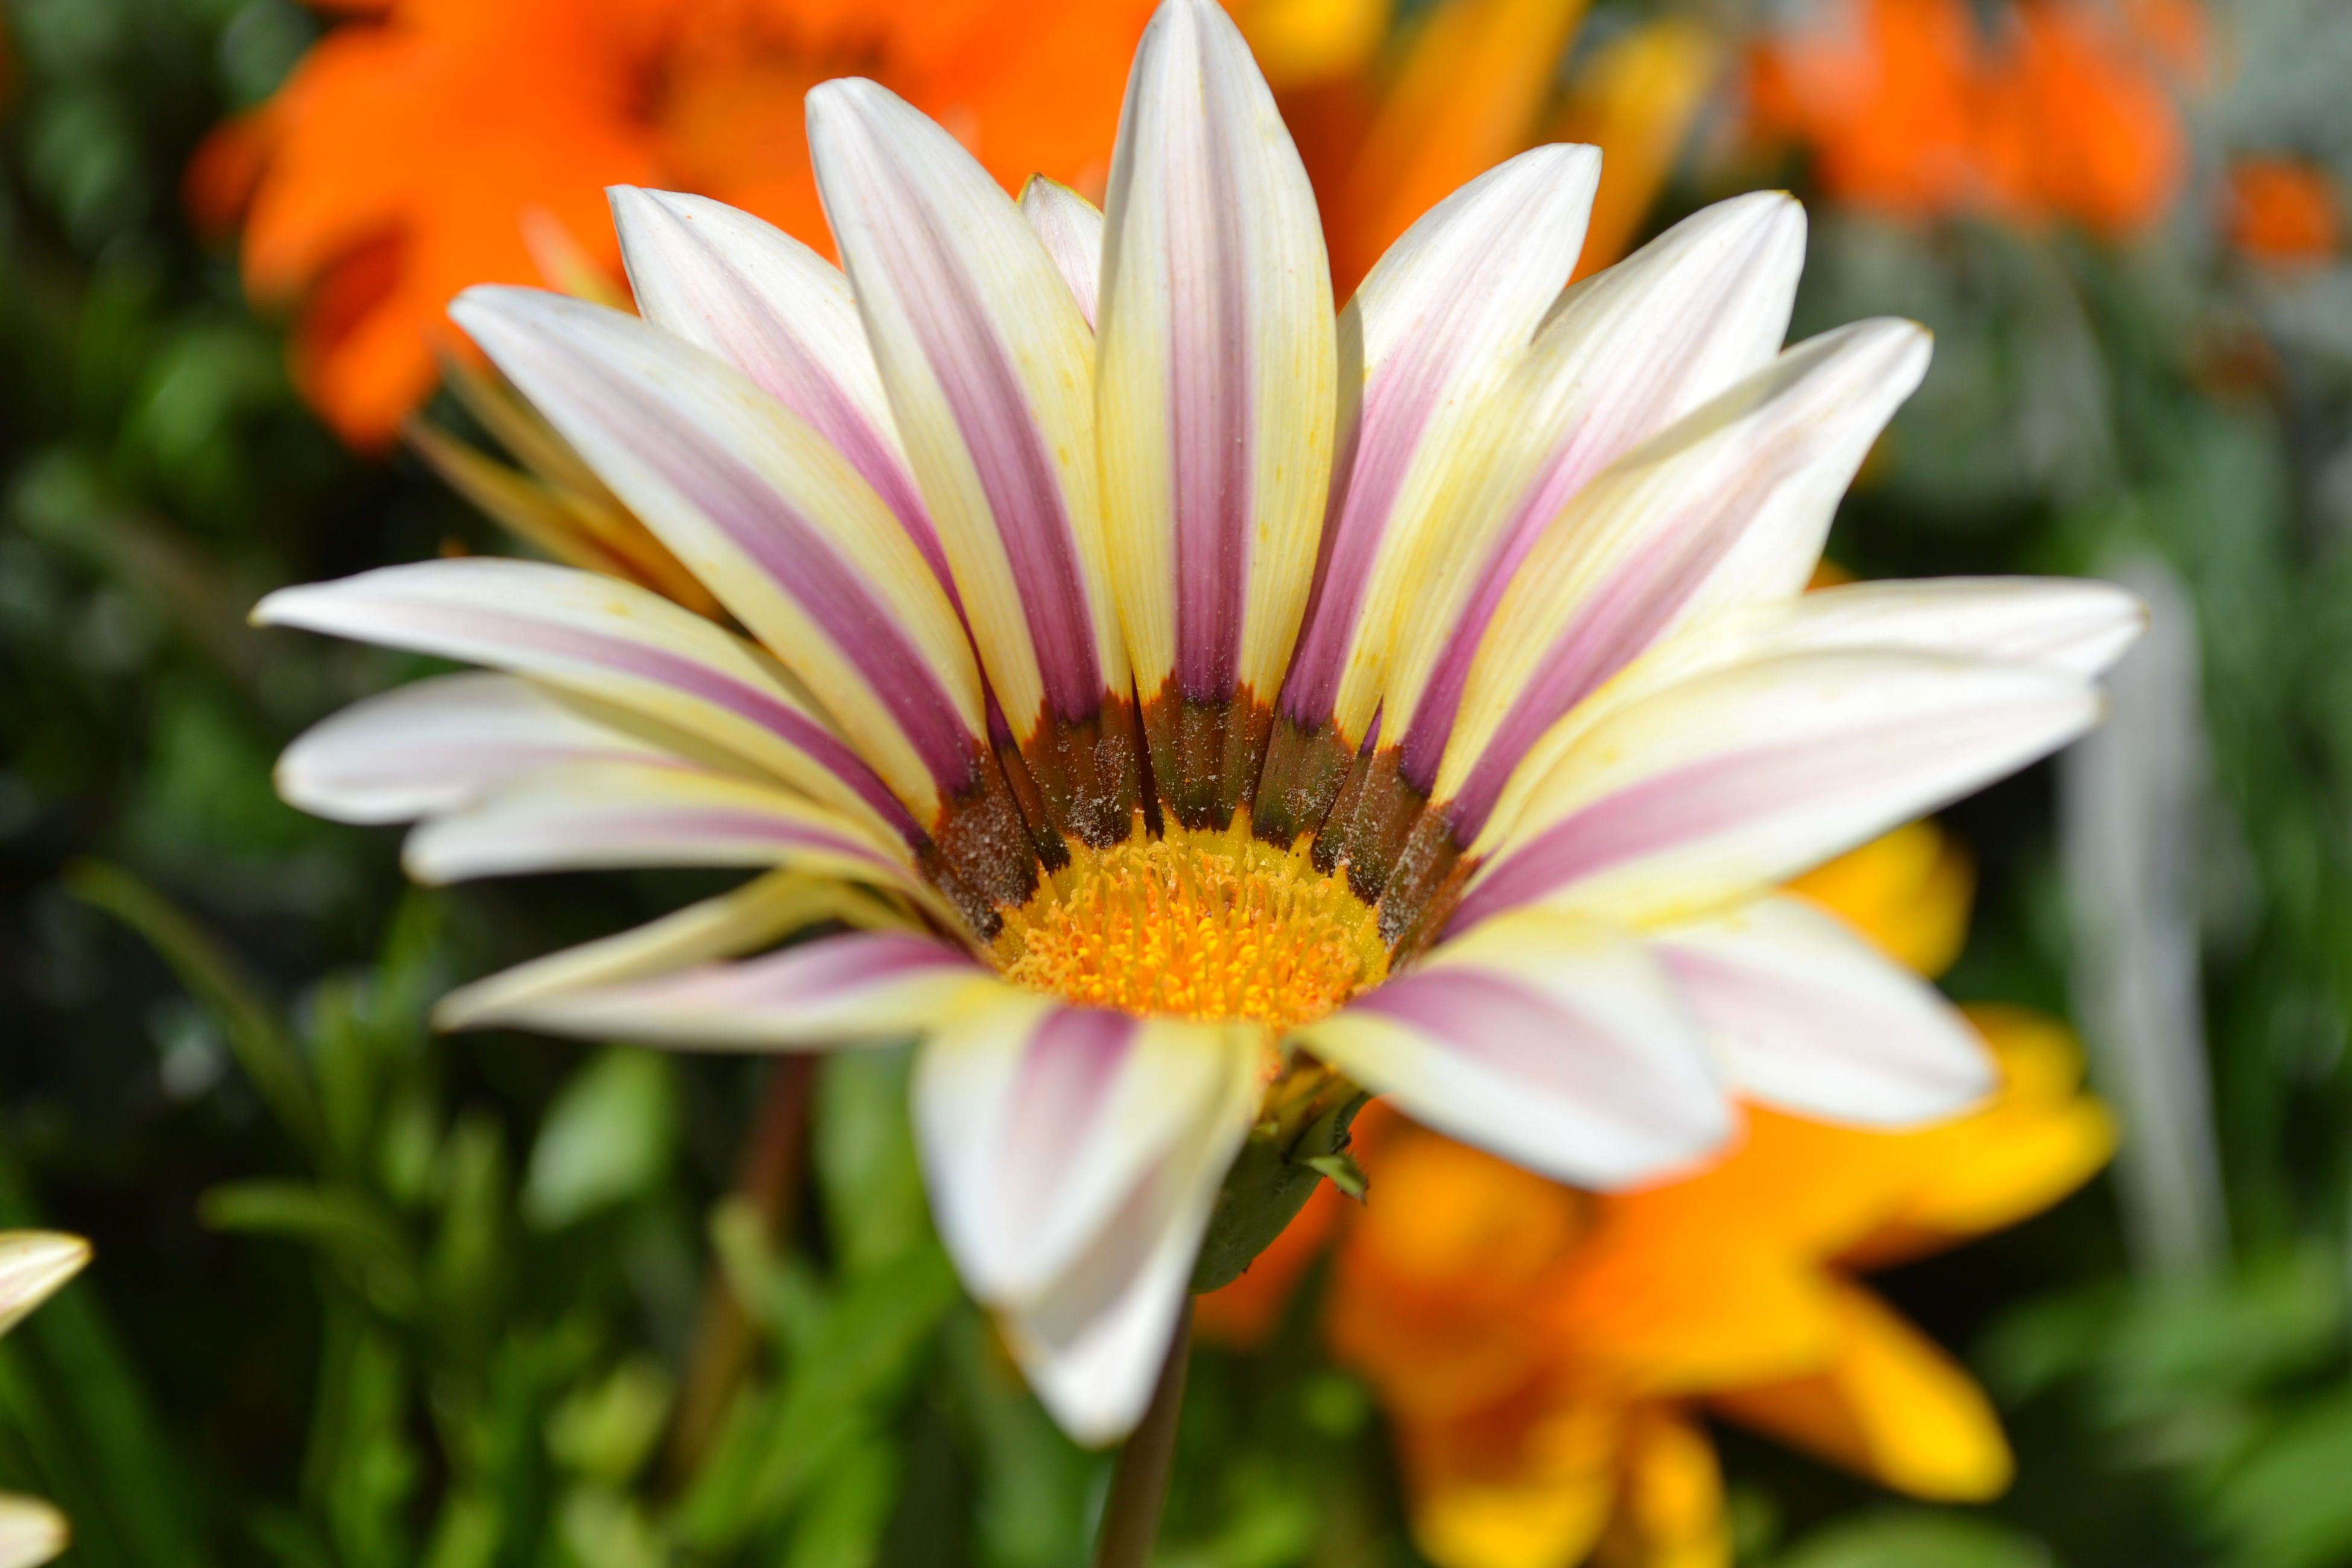 flower, petal, freshness, flower head, fragility, growth, blooming, beauty in nature, pollen, close-up, focus on foreground, yellow, nature, single flower, in bloom, plant, daisy, selective focus, blossom, day